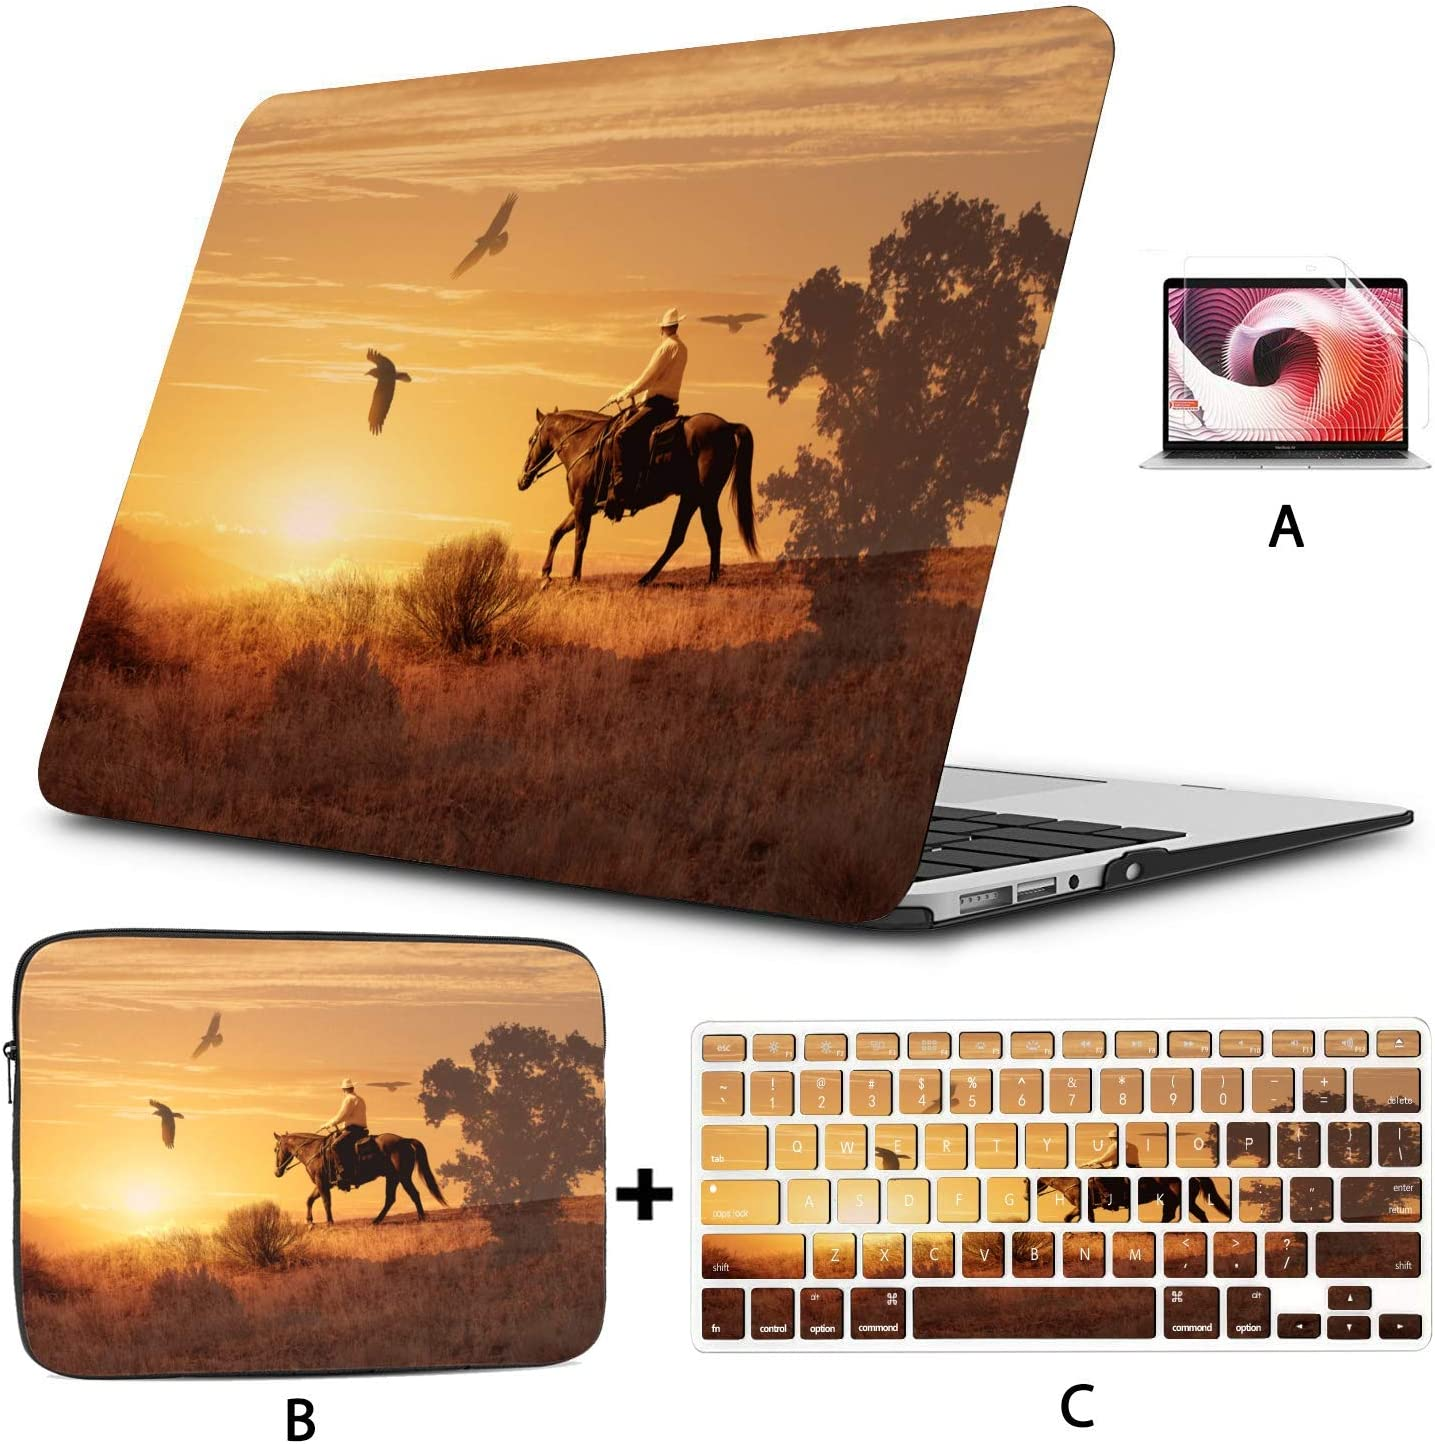 Hard Shell with Sleeve Bag Indefinitely for Cowboy Fort Worth Mall Case A Soft Laptop Riding